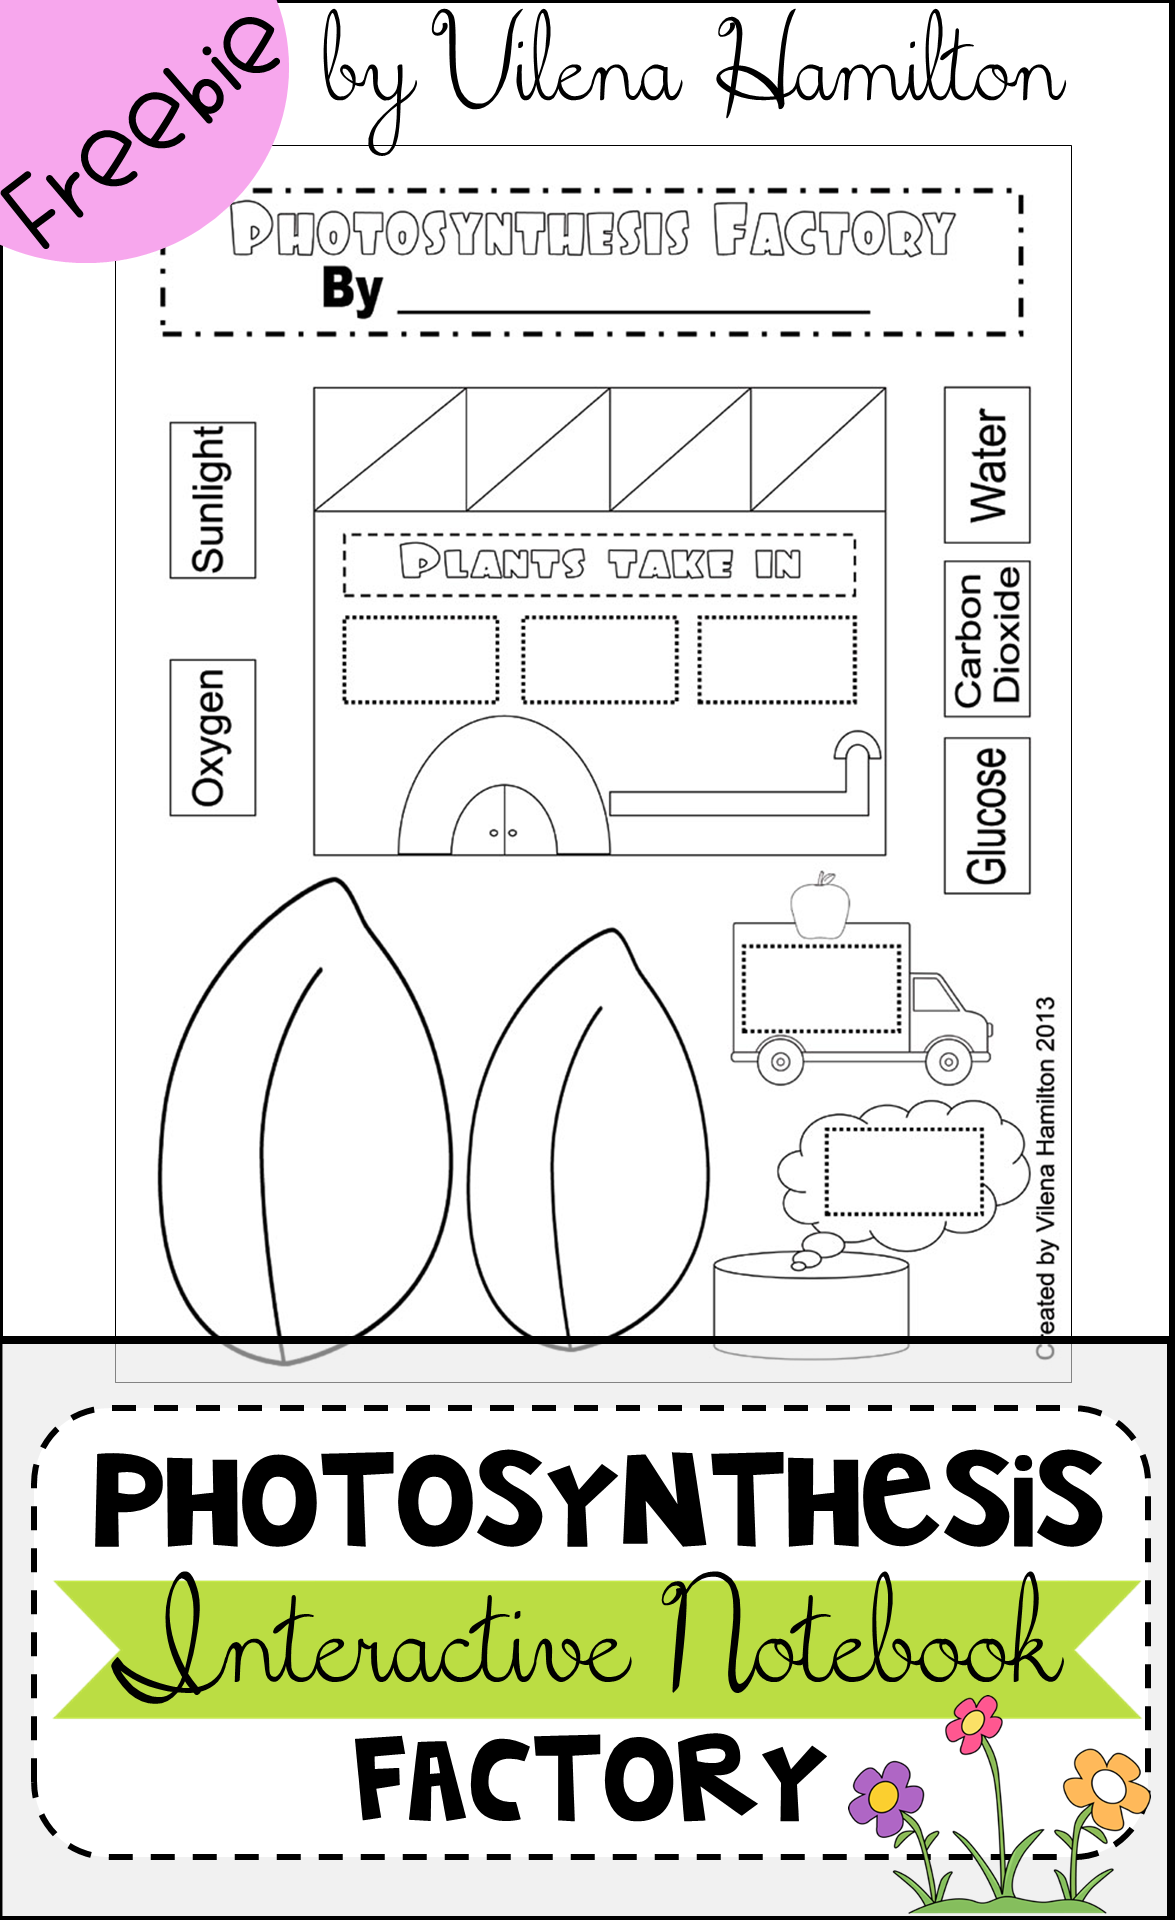 Labels Information List 32 How Does Photosynthesis Work